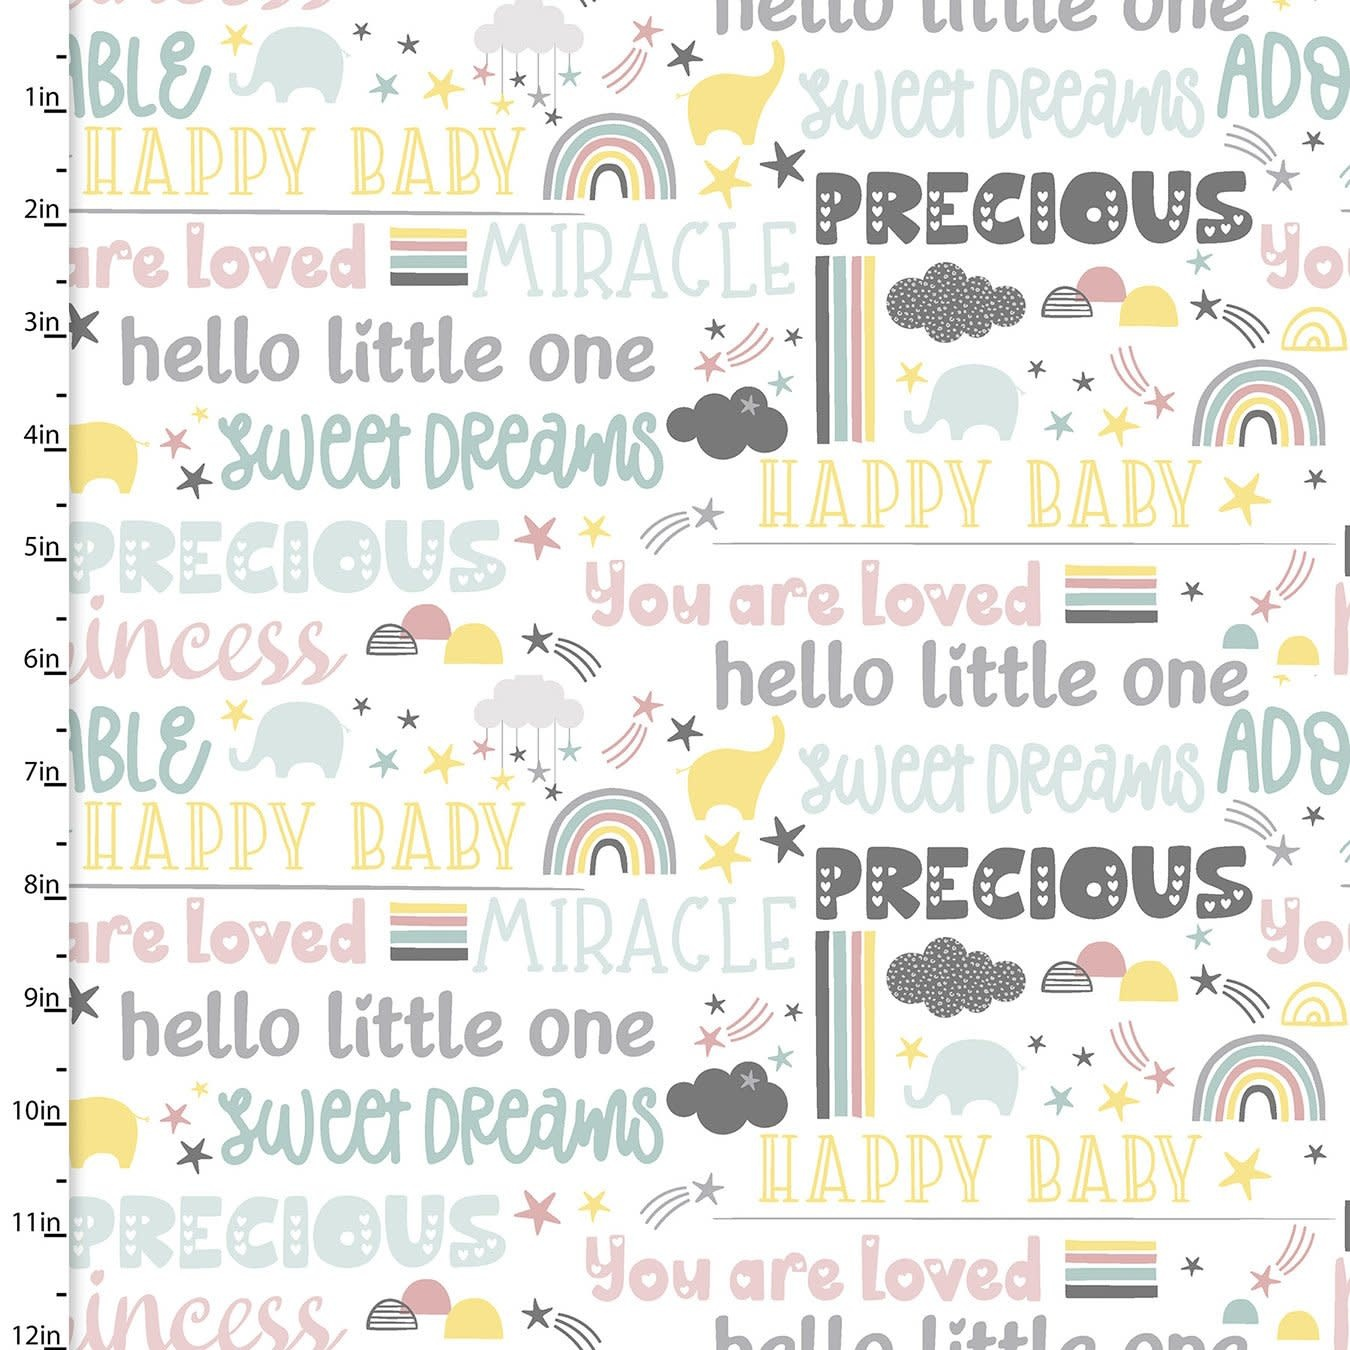 3 Wishes Small and Mighty - Precious Words  .13/cm or $13/m